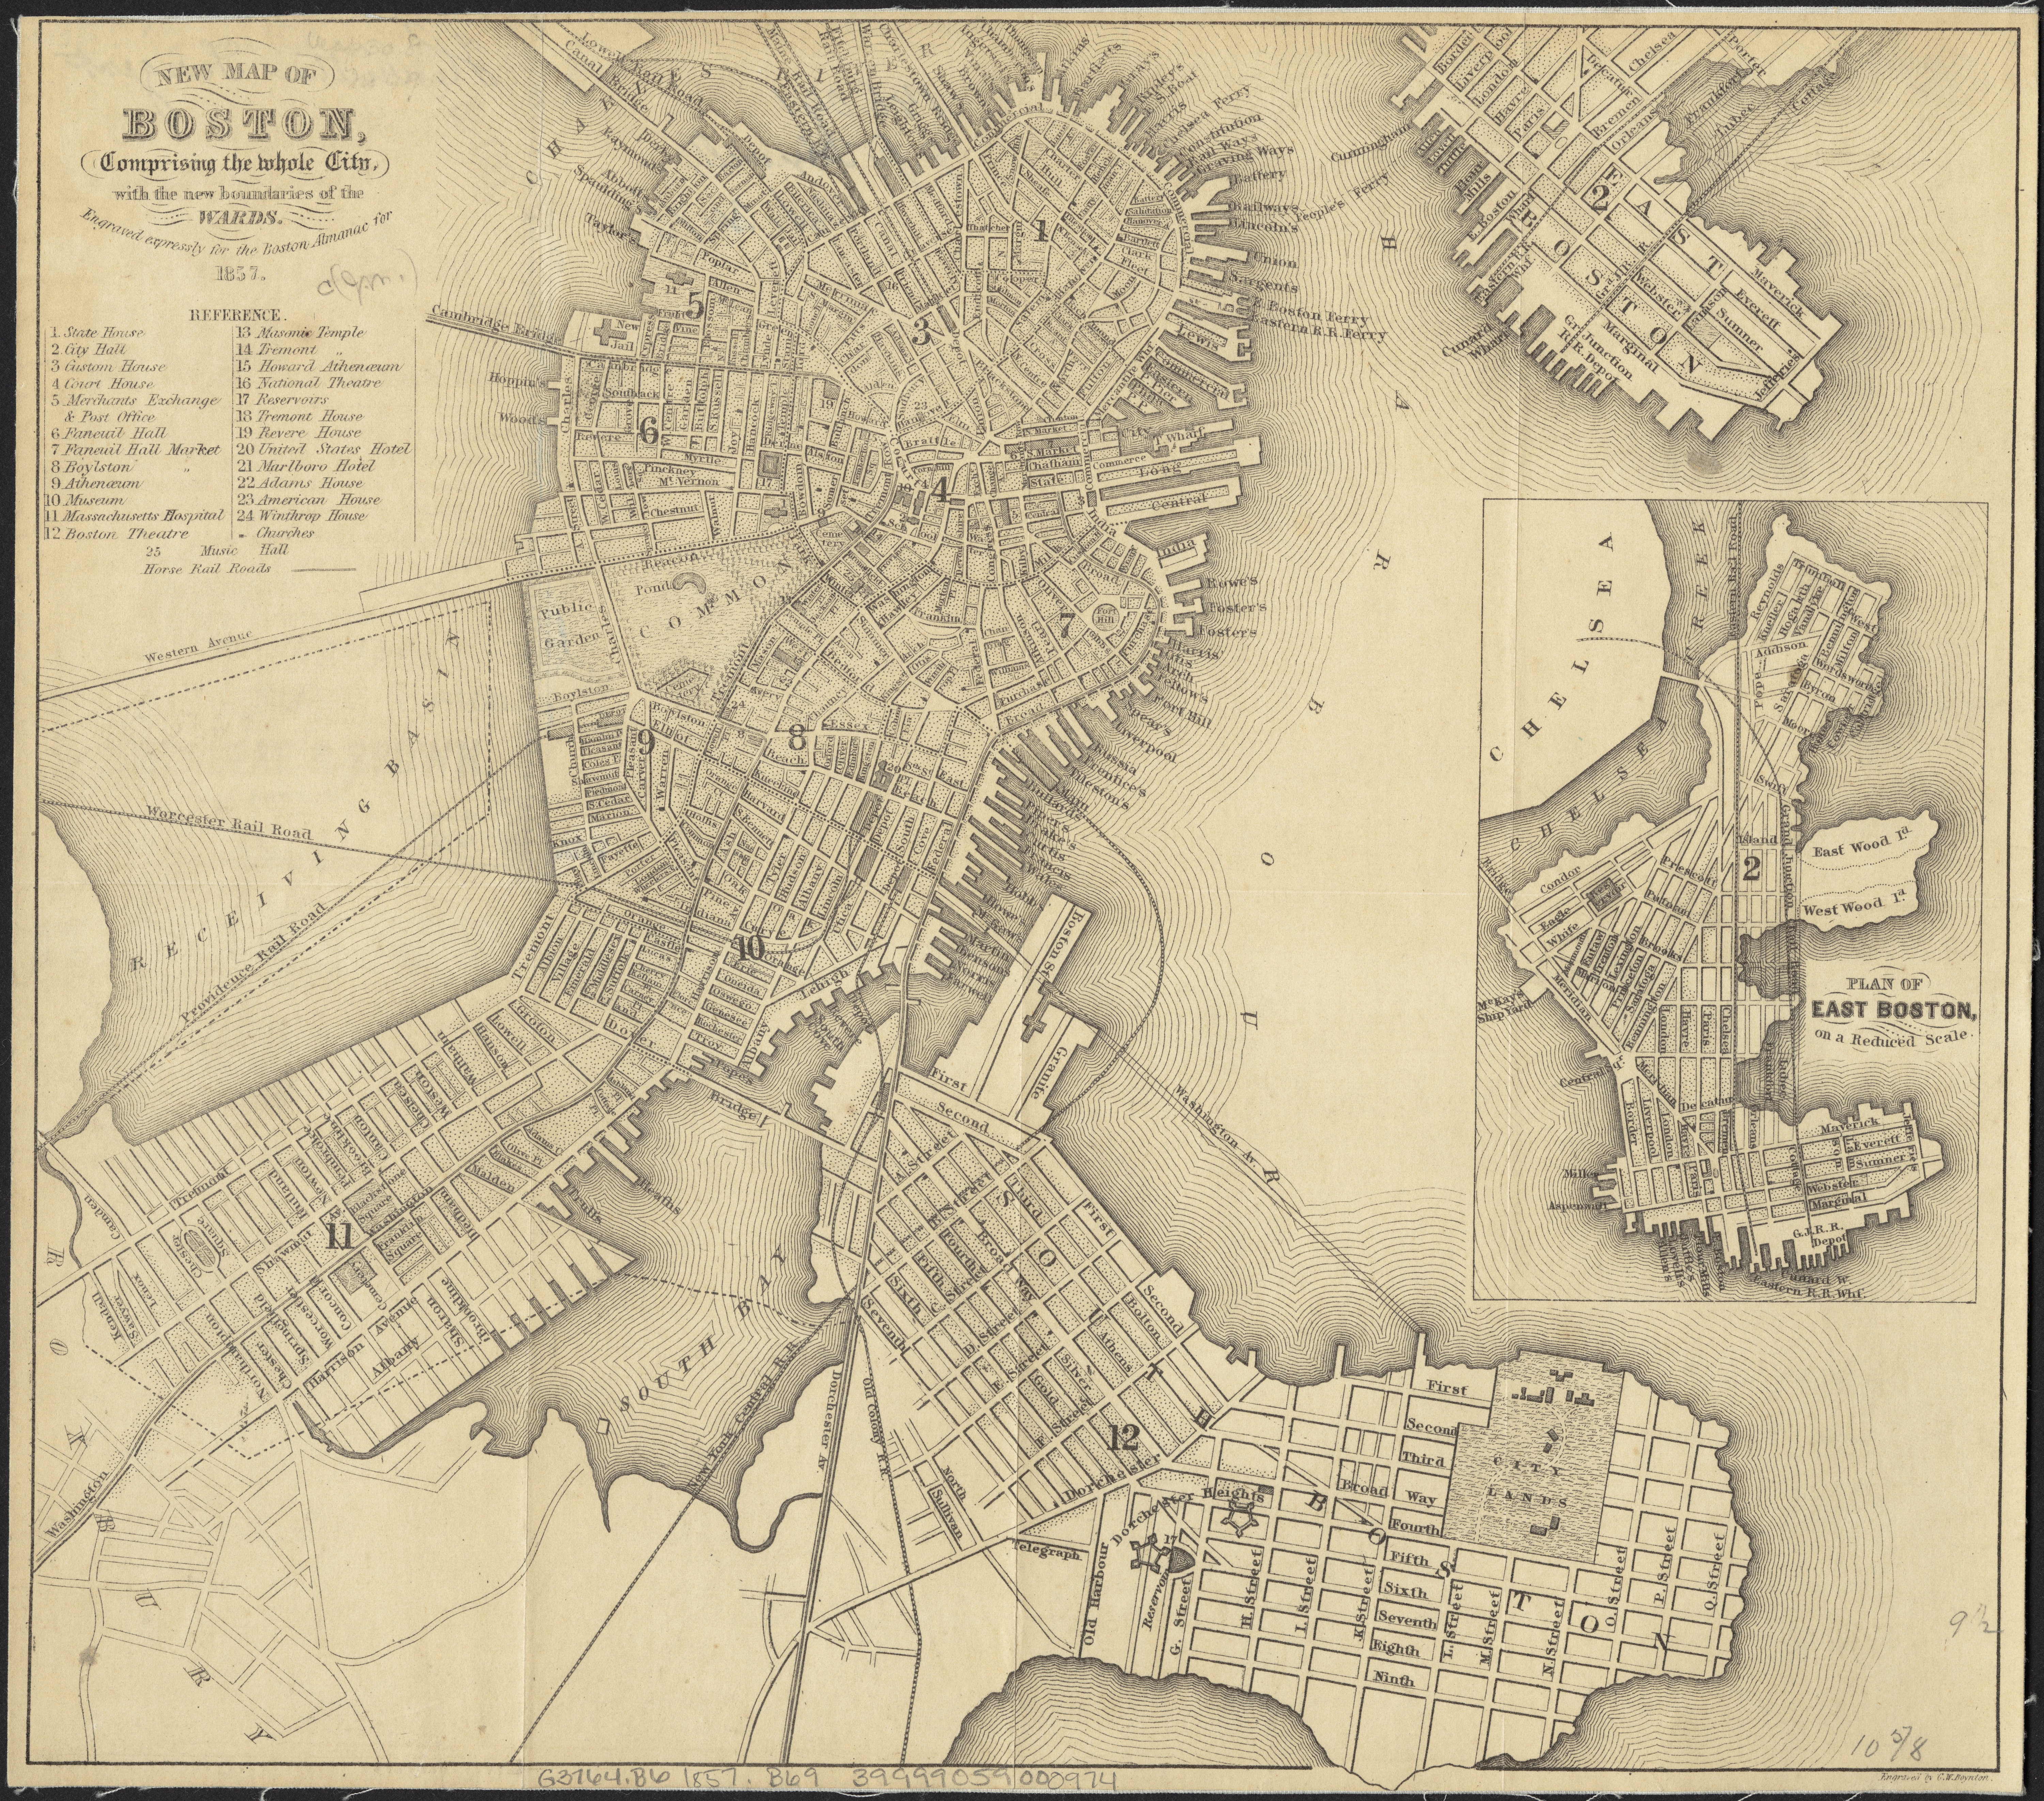 Map reproduction courtesy of the Norman B. Leventhal Map Center at the Boston Public Library